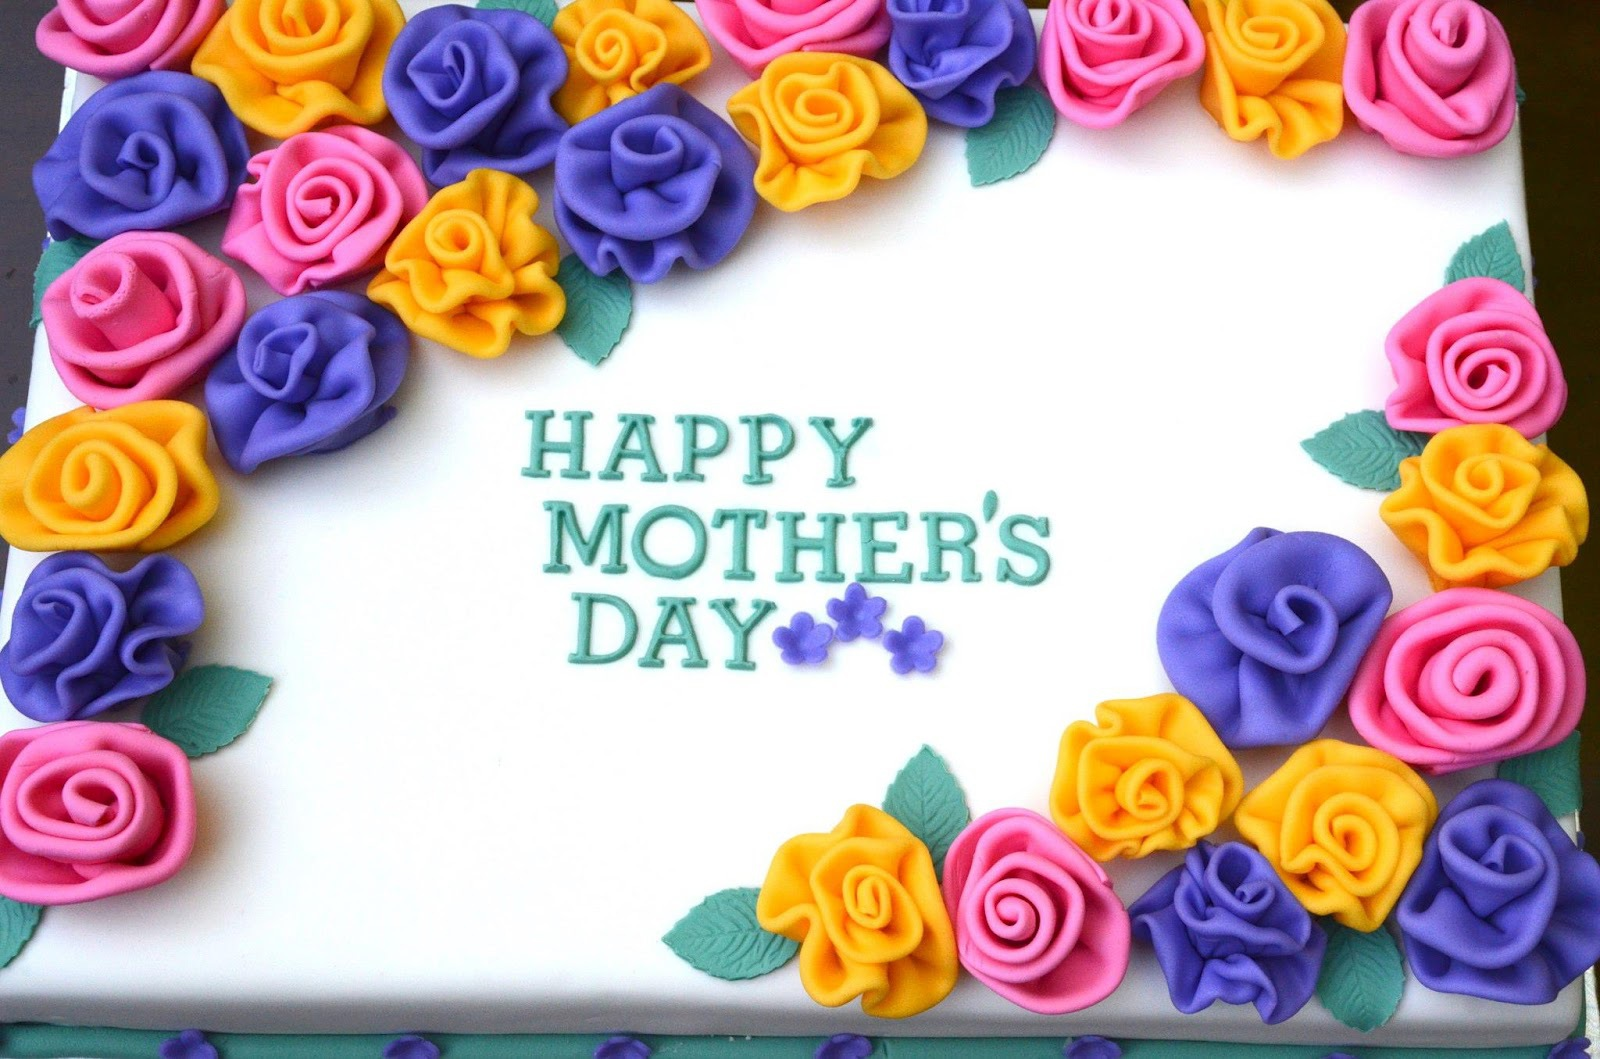 Happy Mother's Day Cake Images